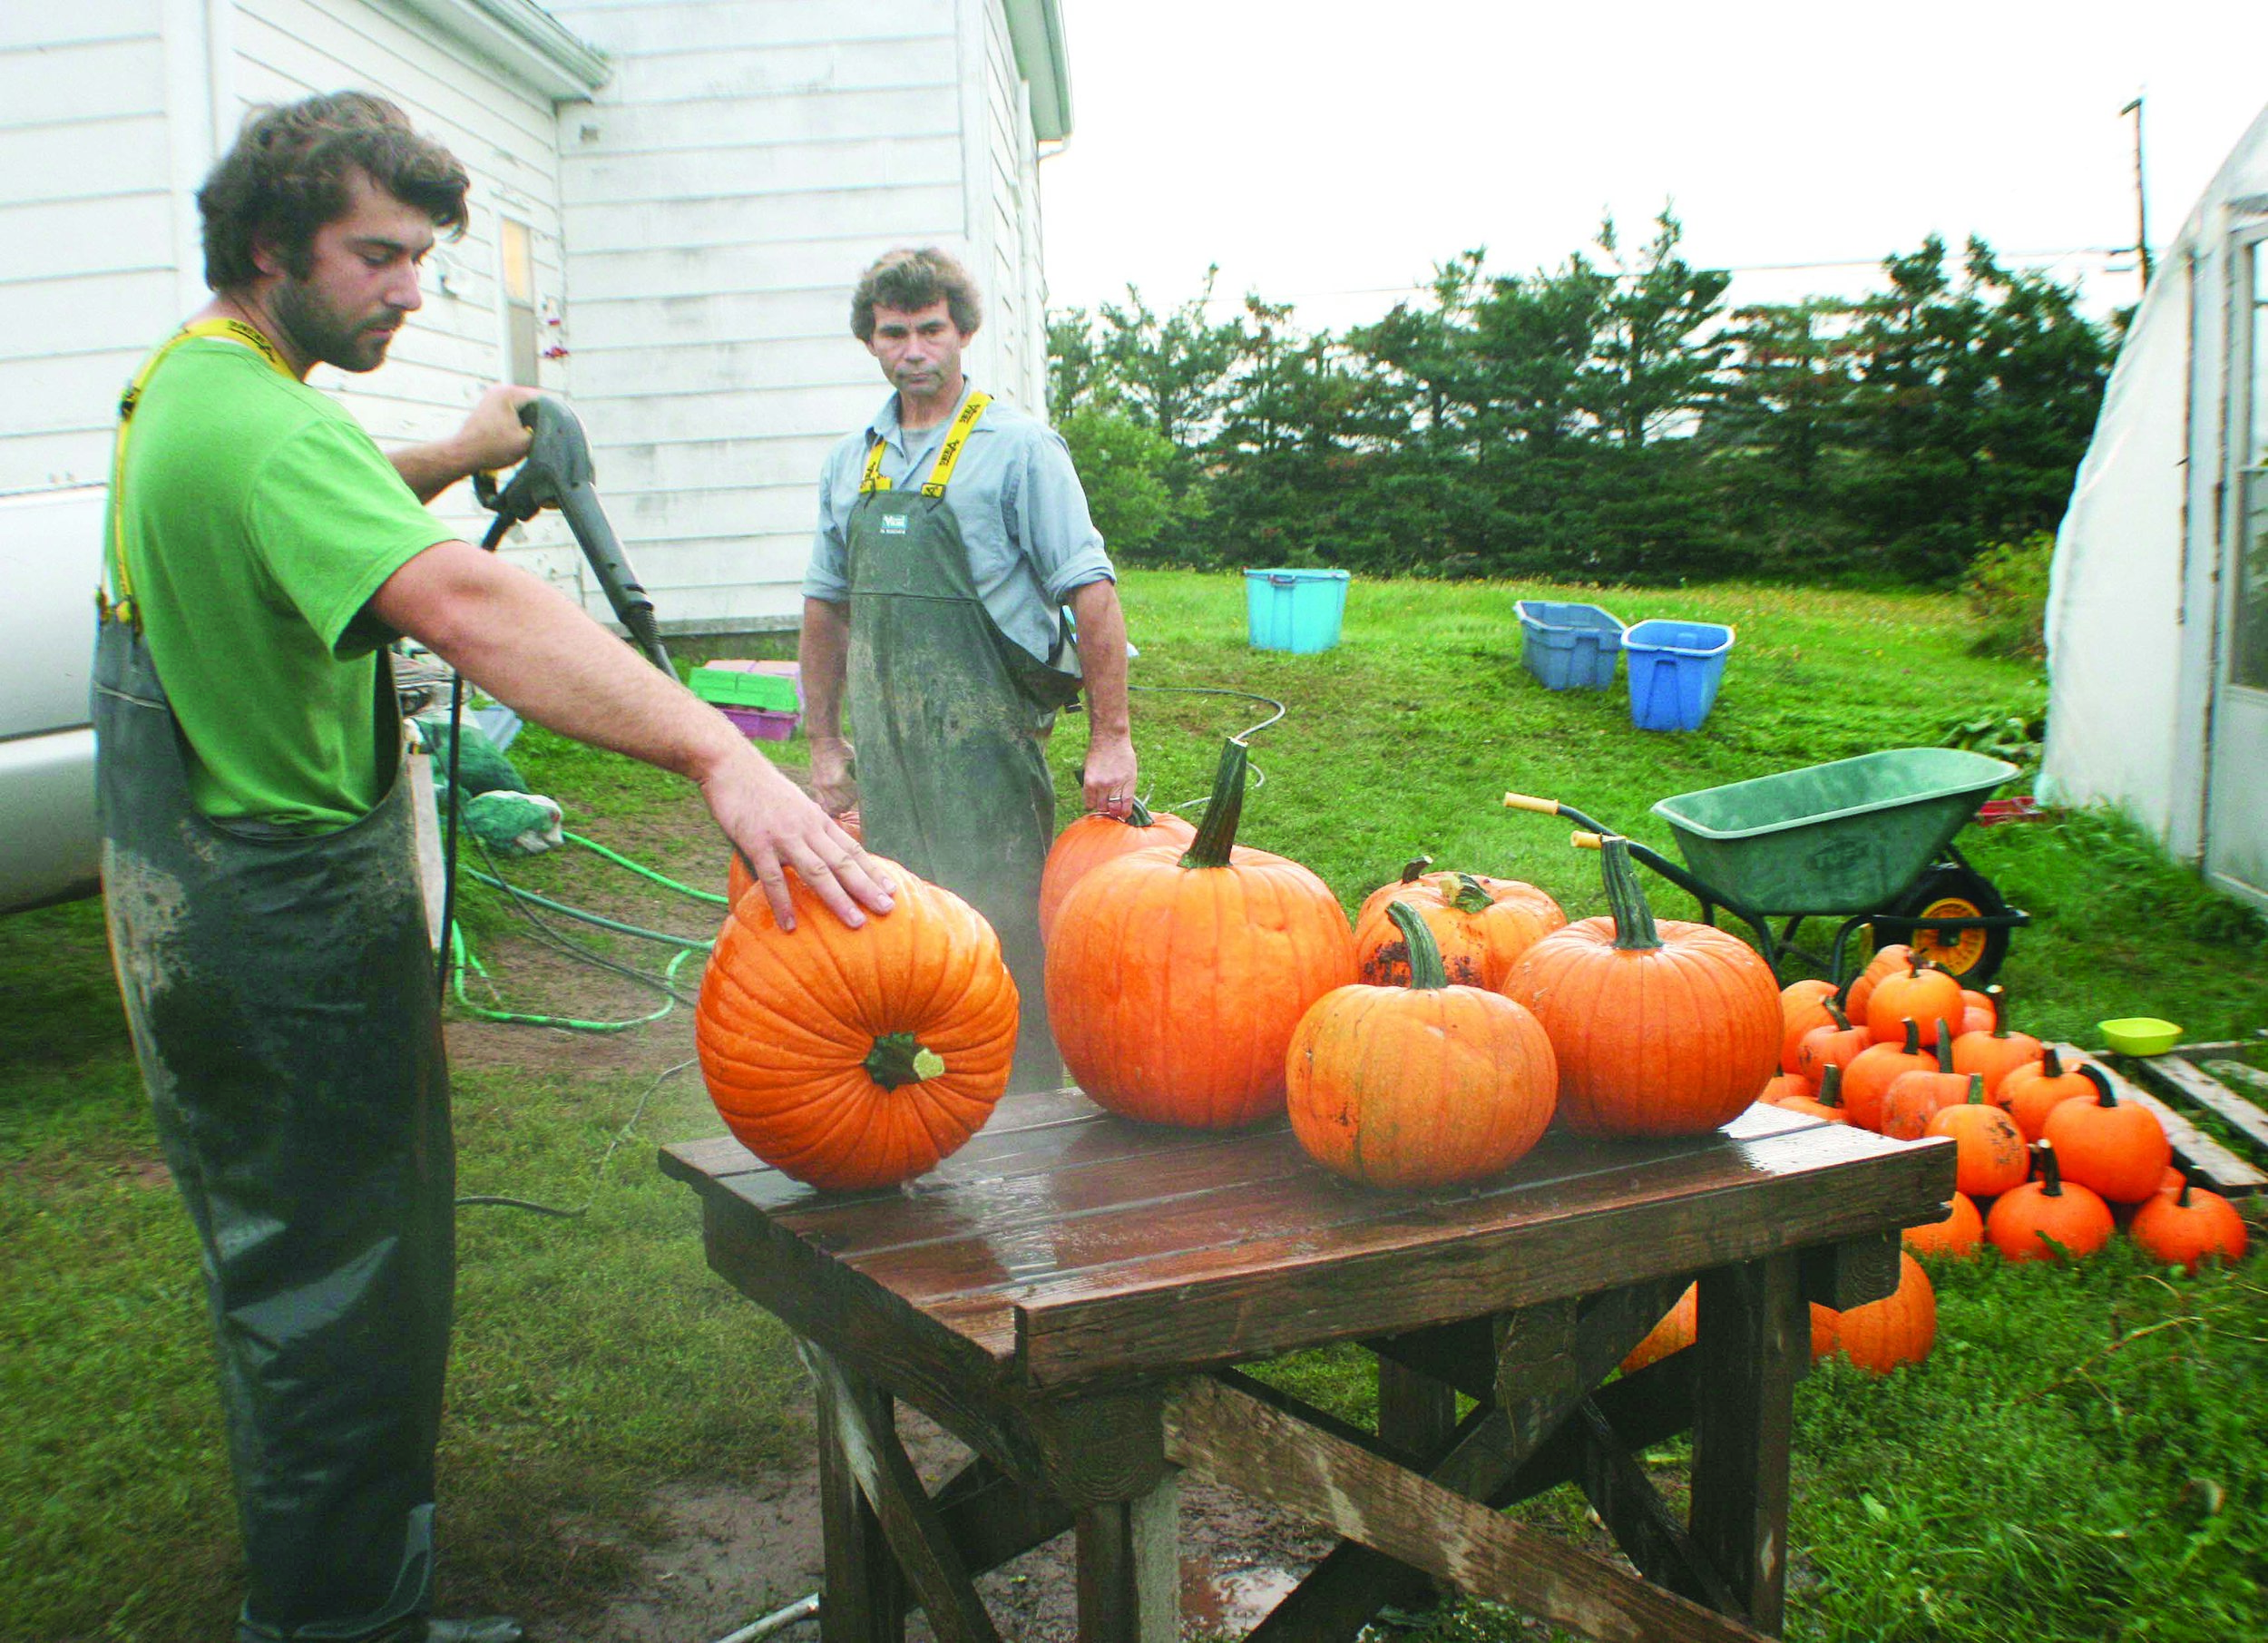 All of the produce at Murray's Farm Fresh Vegetables in Point de Bute, N.B., is washed before going into the family farm market. Nathan Murray spray-washes some of the more than 8,000 pumpkins grown on the farm this year, while his father Robert looks on.